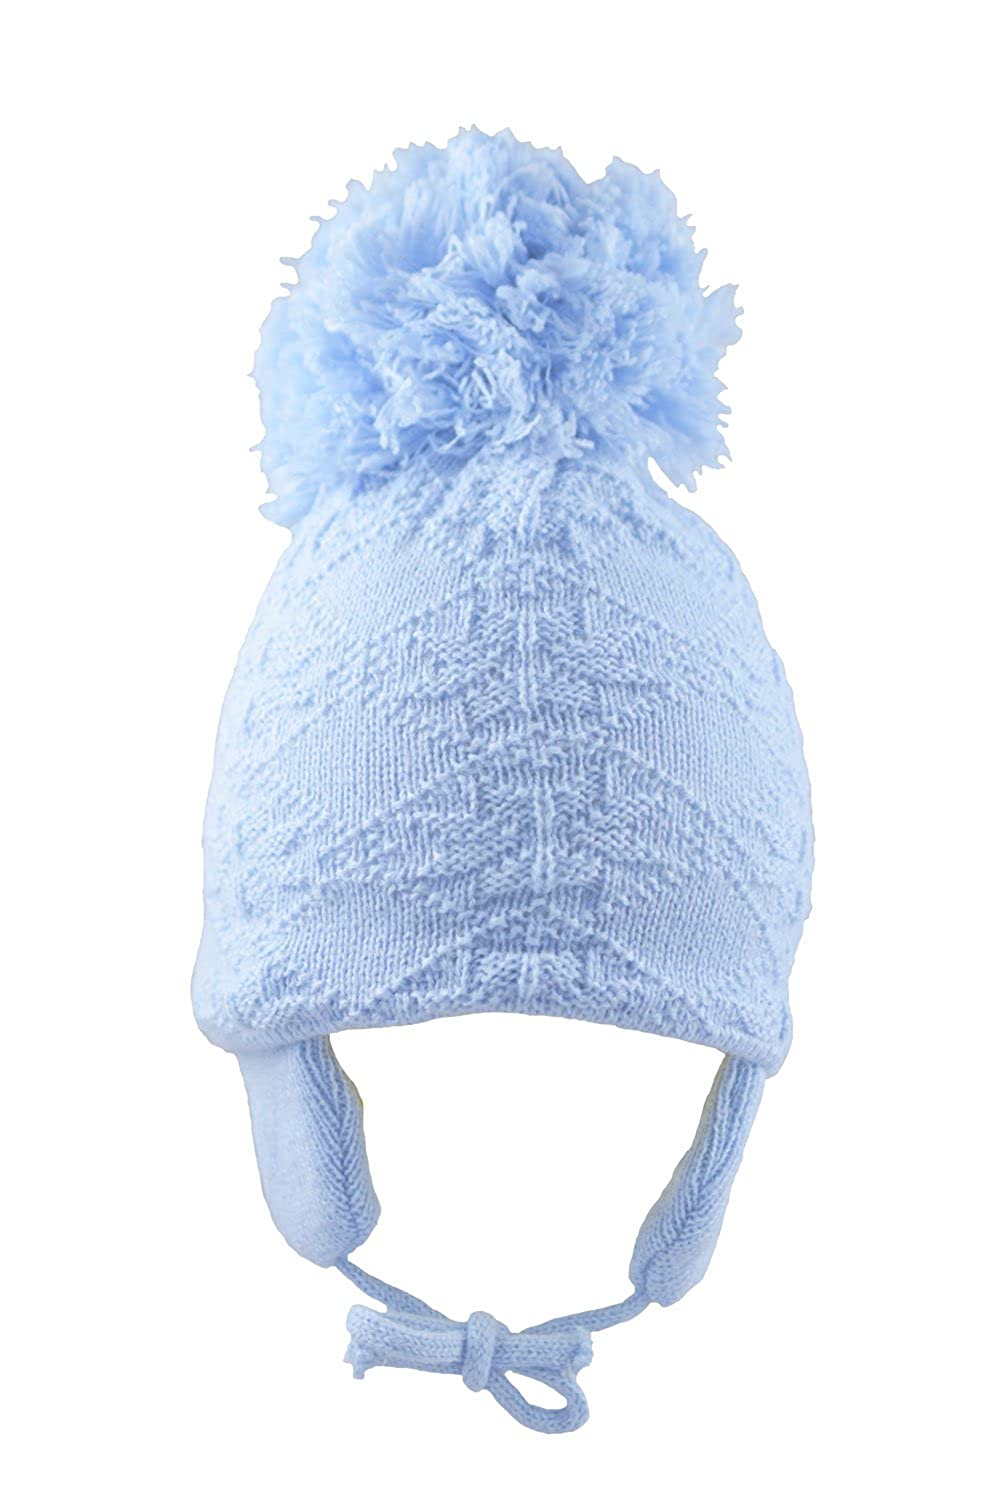 a23d0fc00 Pesci Baby Girls Boys Pom Pom Hat with Ear Flaps and Chin Ties Winter  Knitted Snowflake